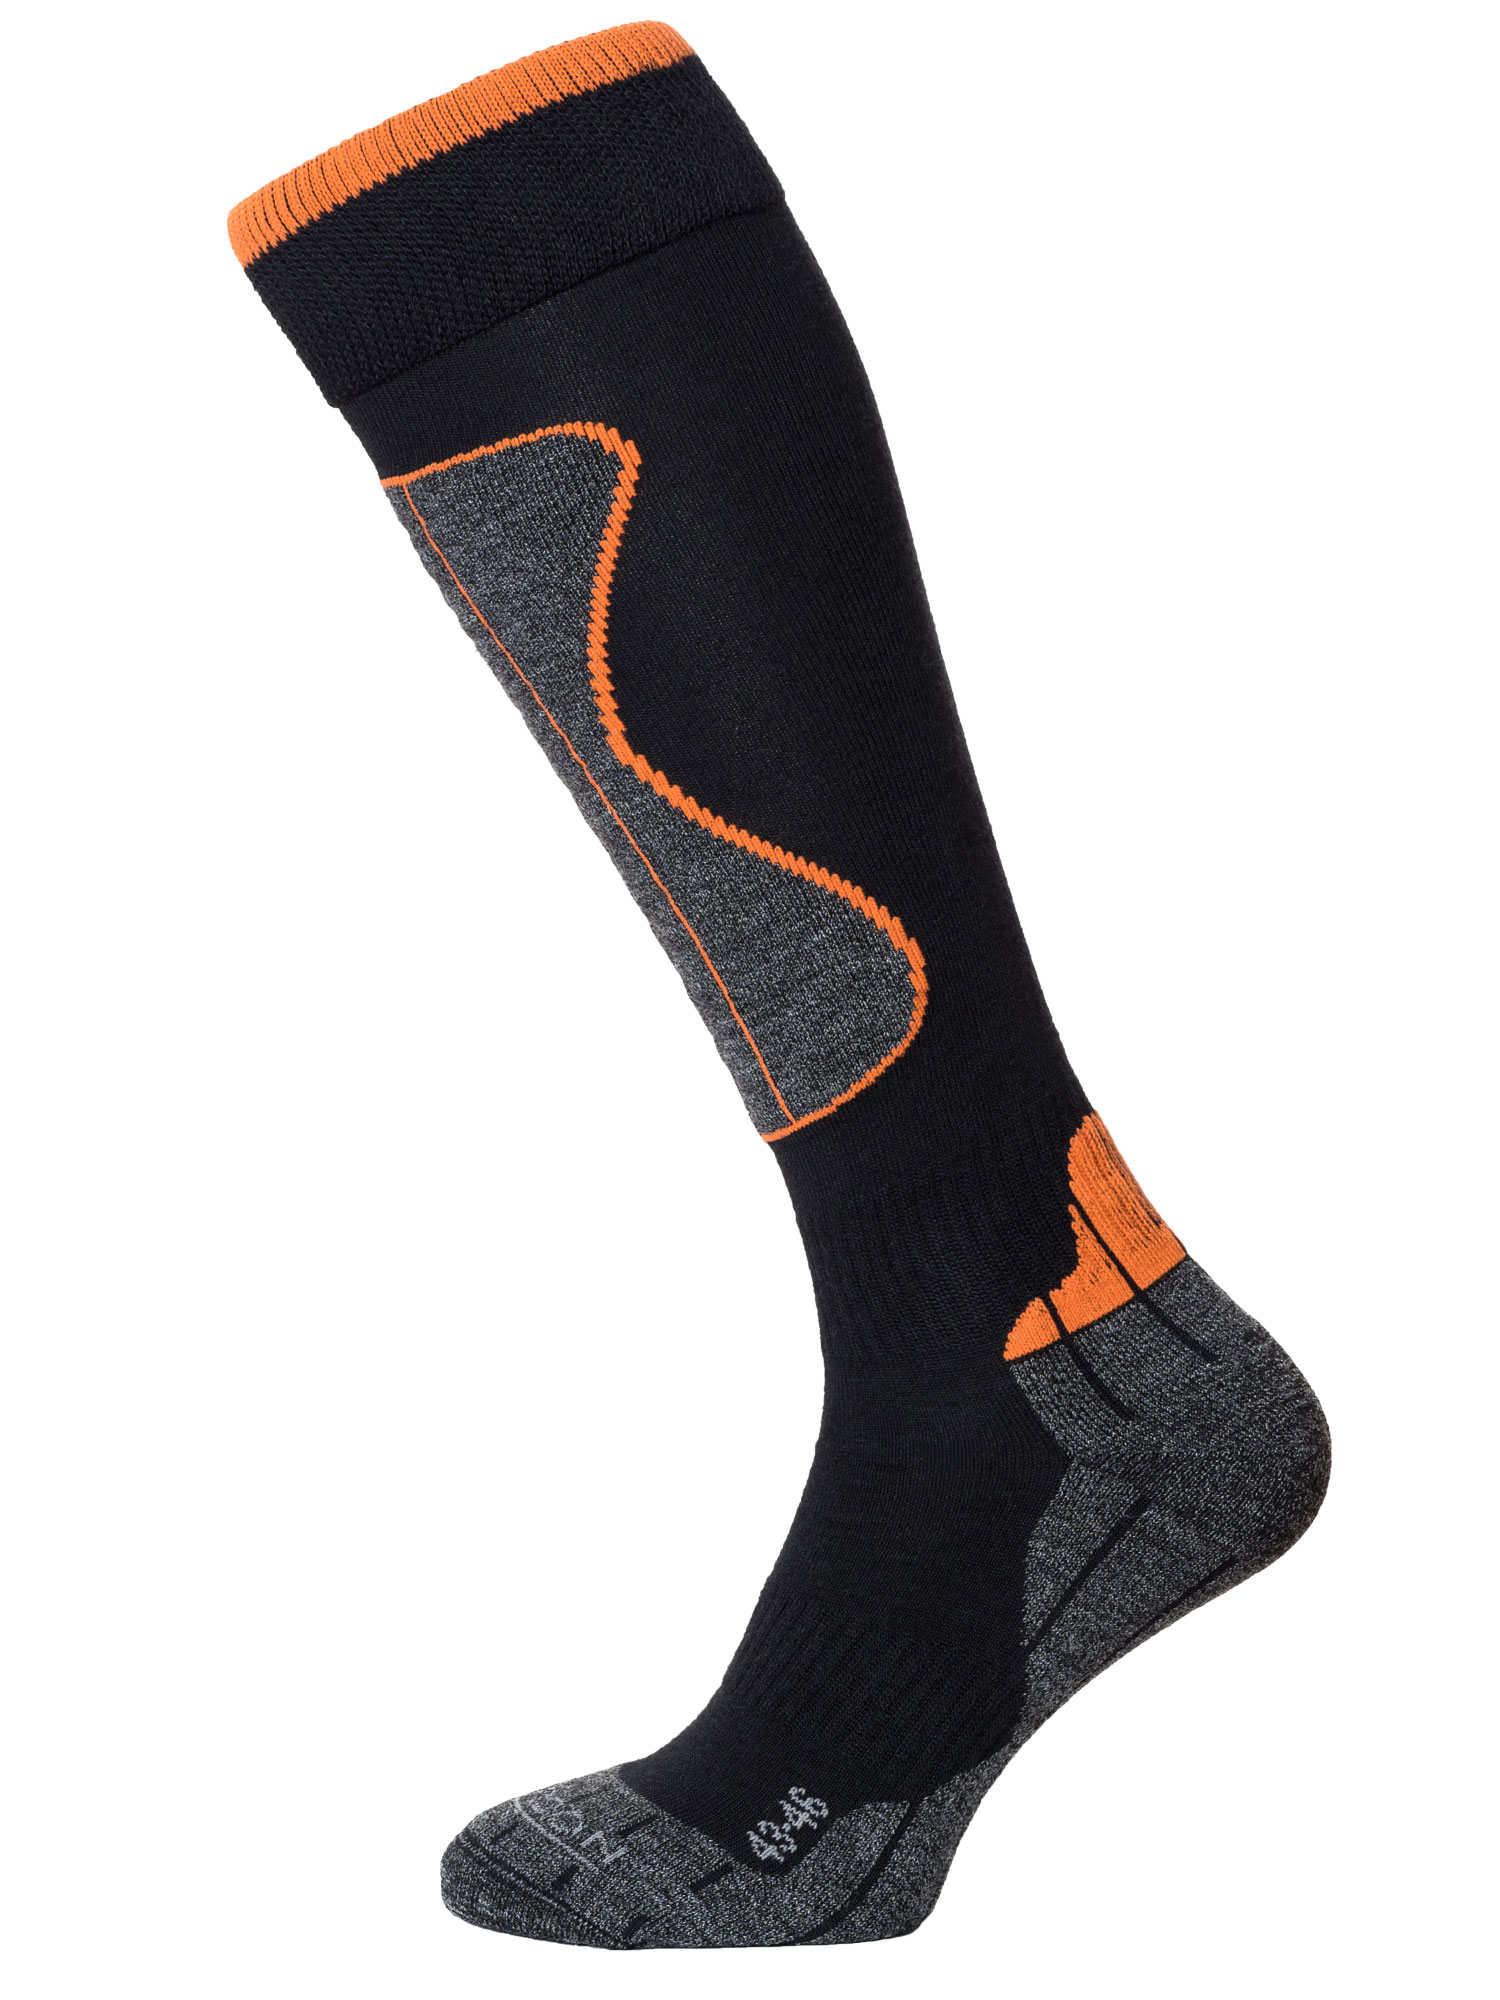 Winter Sport Technical Merino – Black / Orange